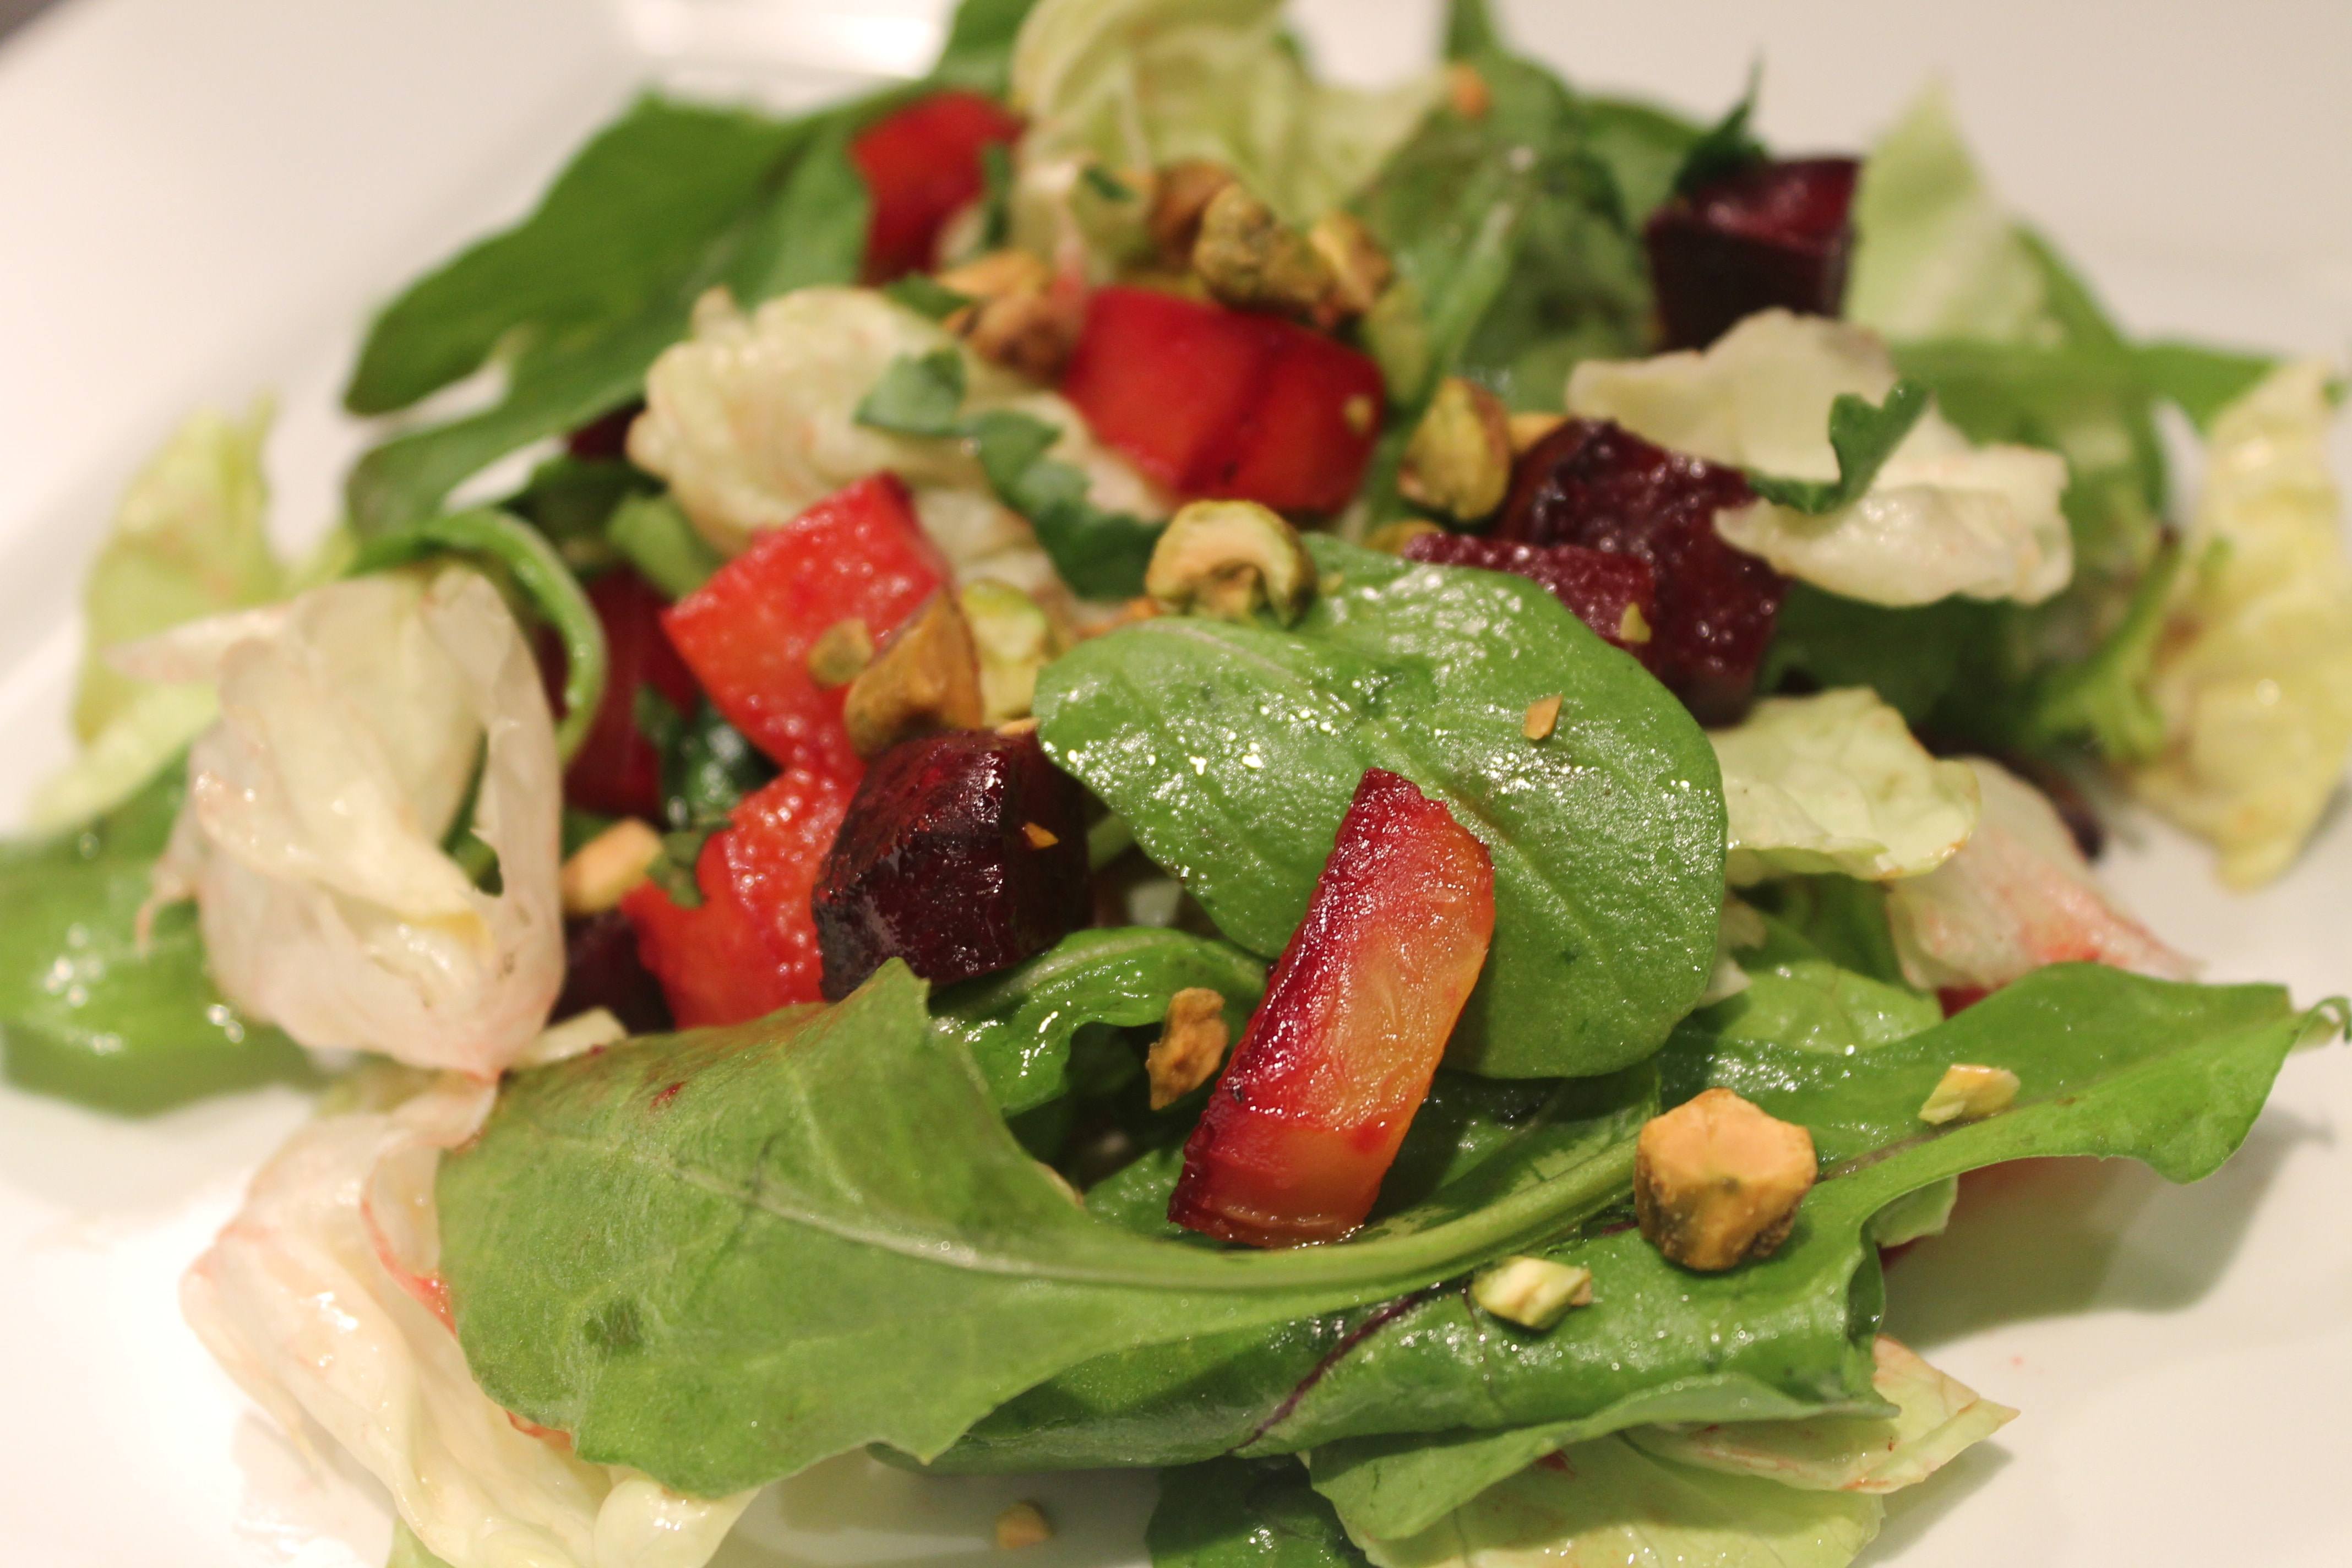 Lemony Roasted Beet Salad with Arugula and Butter Lettuce